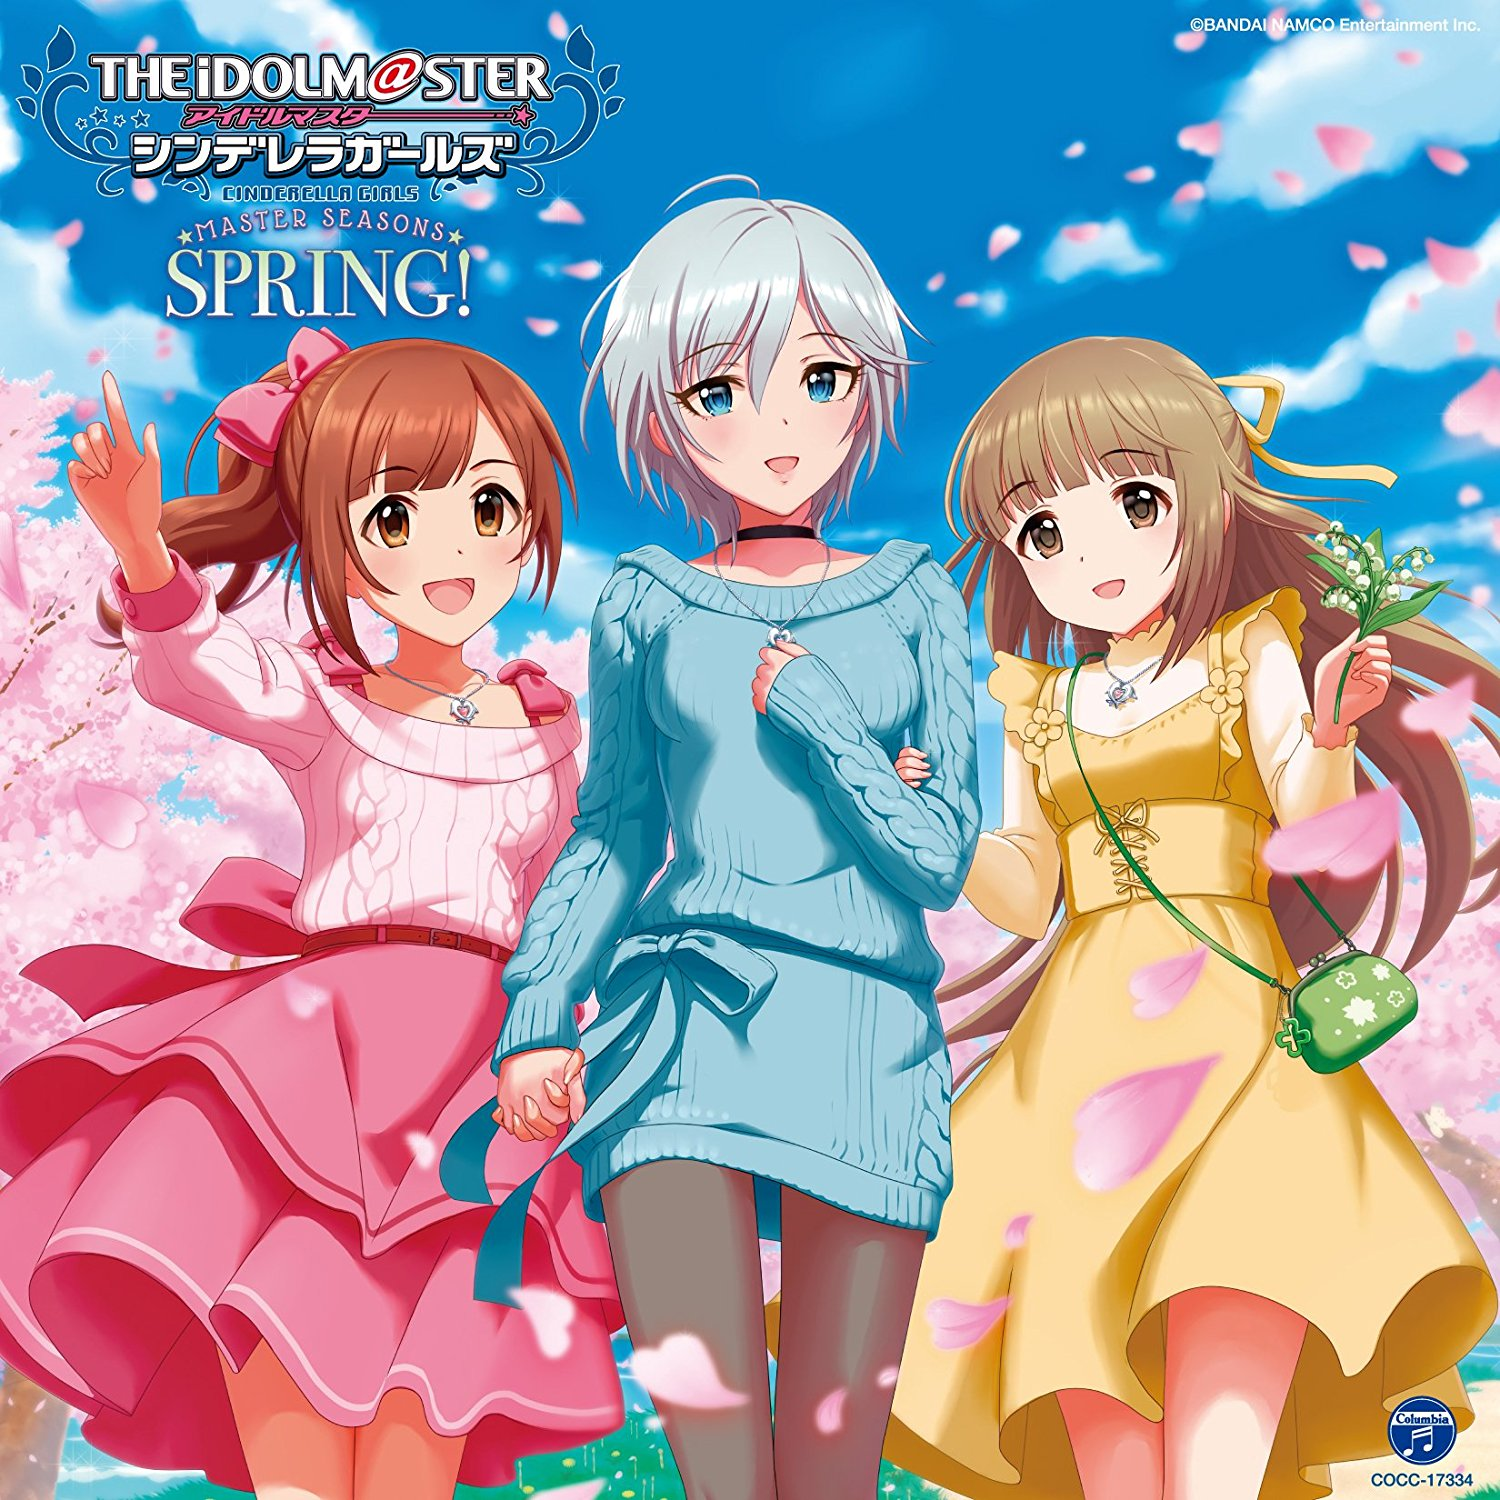 THE IDOLM@STER CINDERELLA GIRLS MASTER SEASONS SPRING